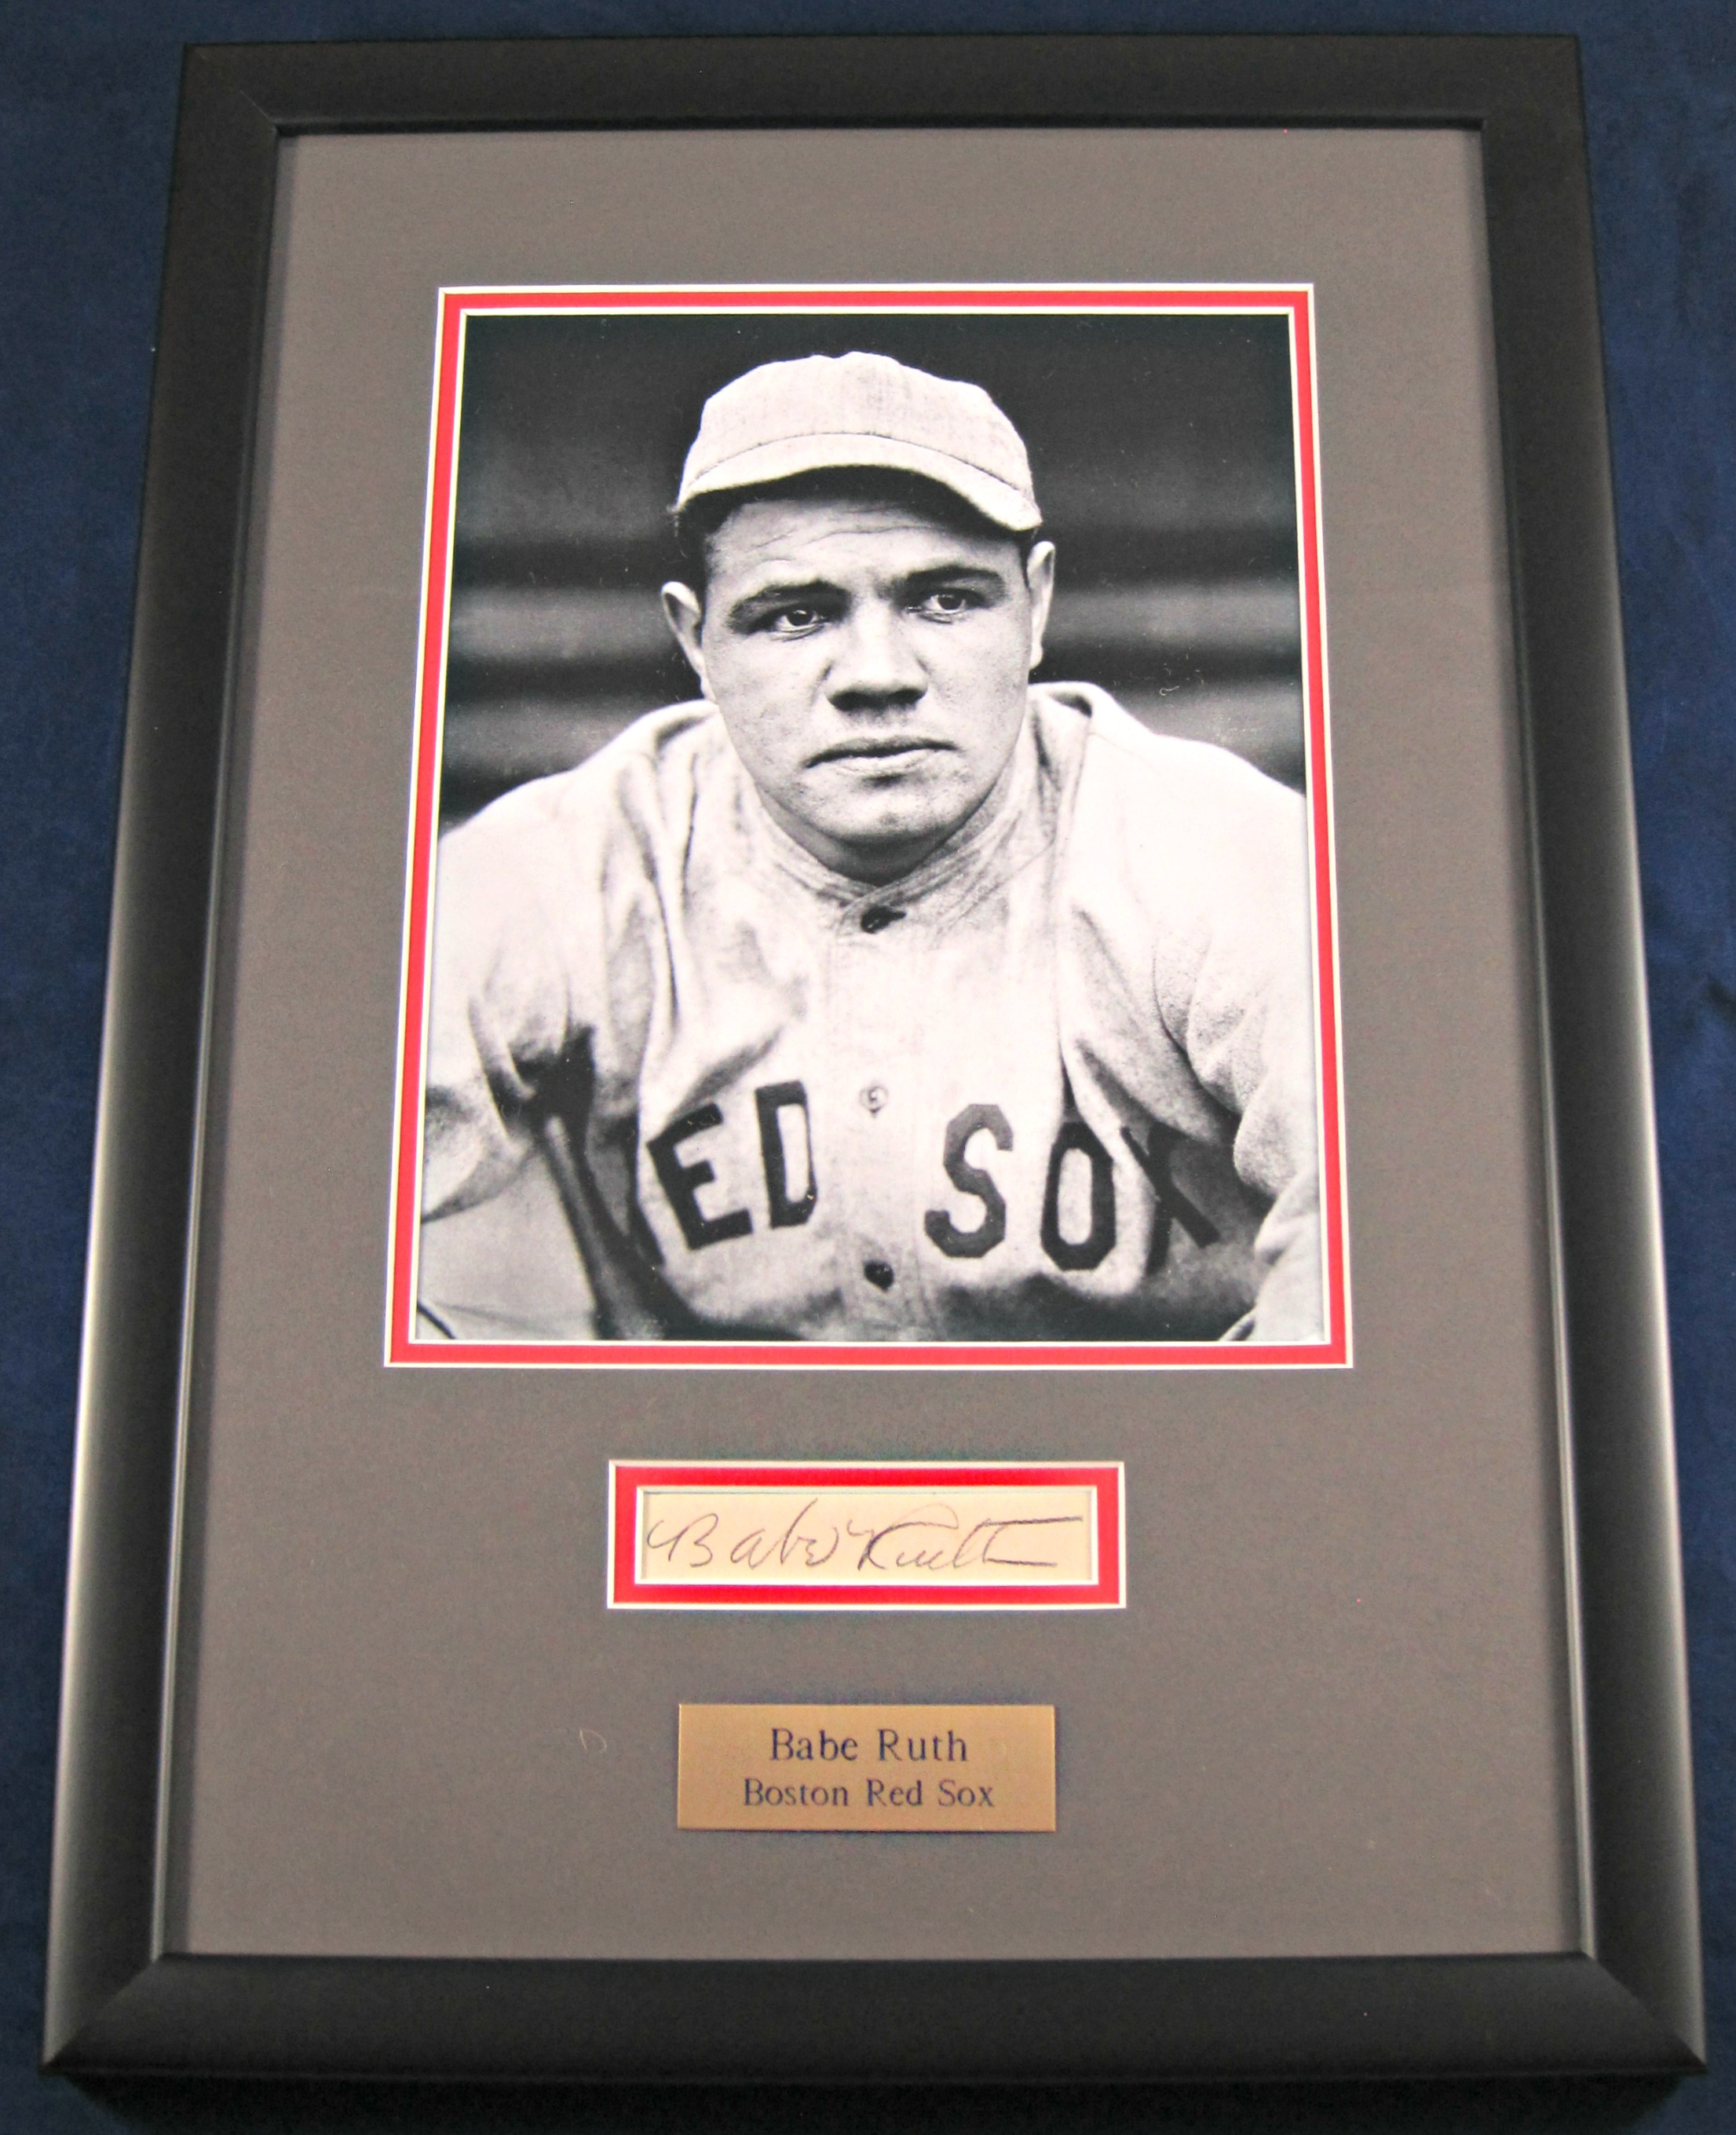 Babe Ruth Boston Red Sox Autographed Display